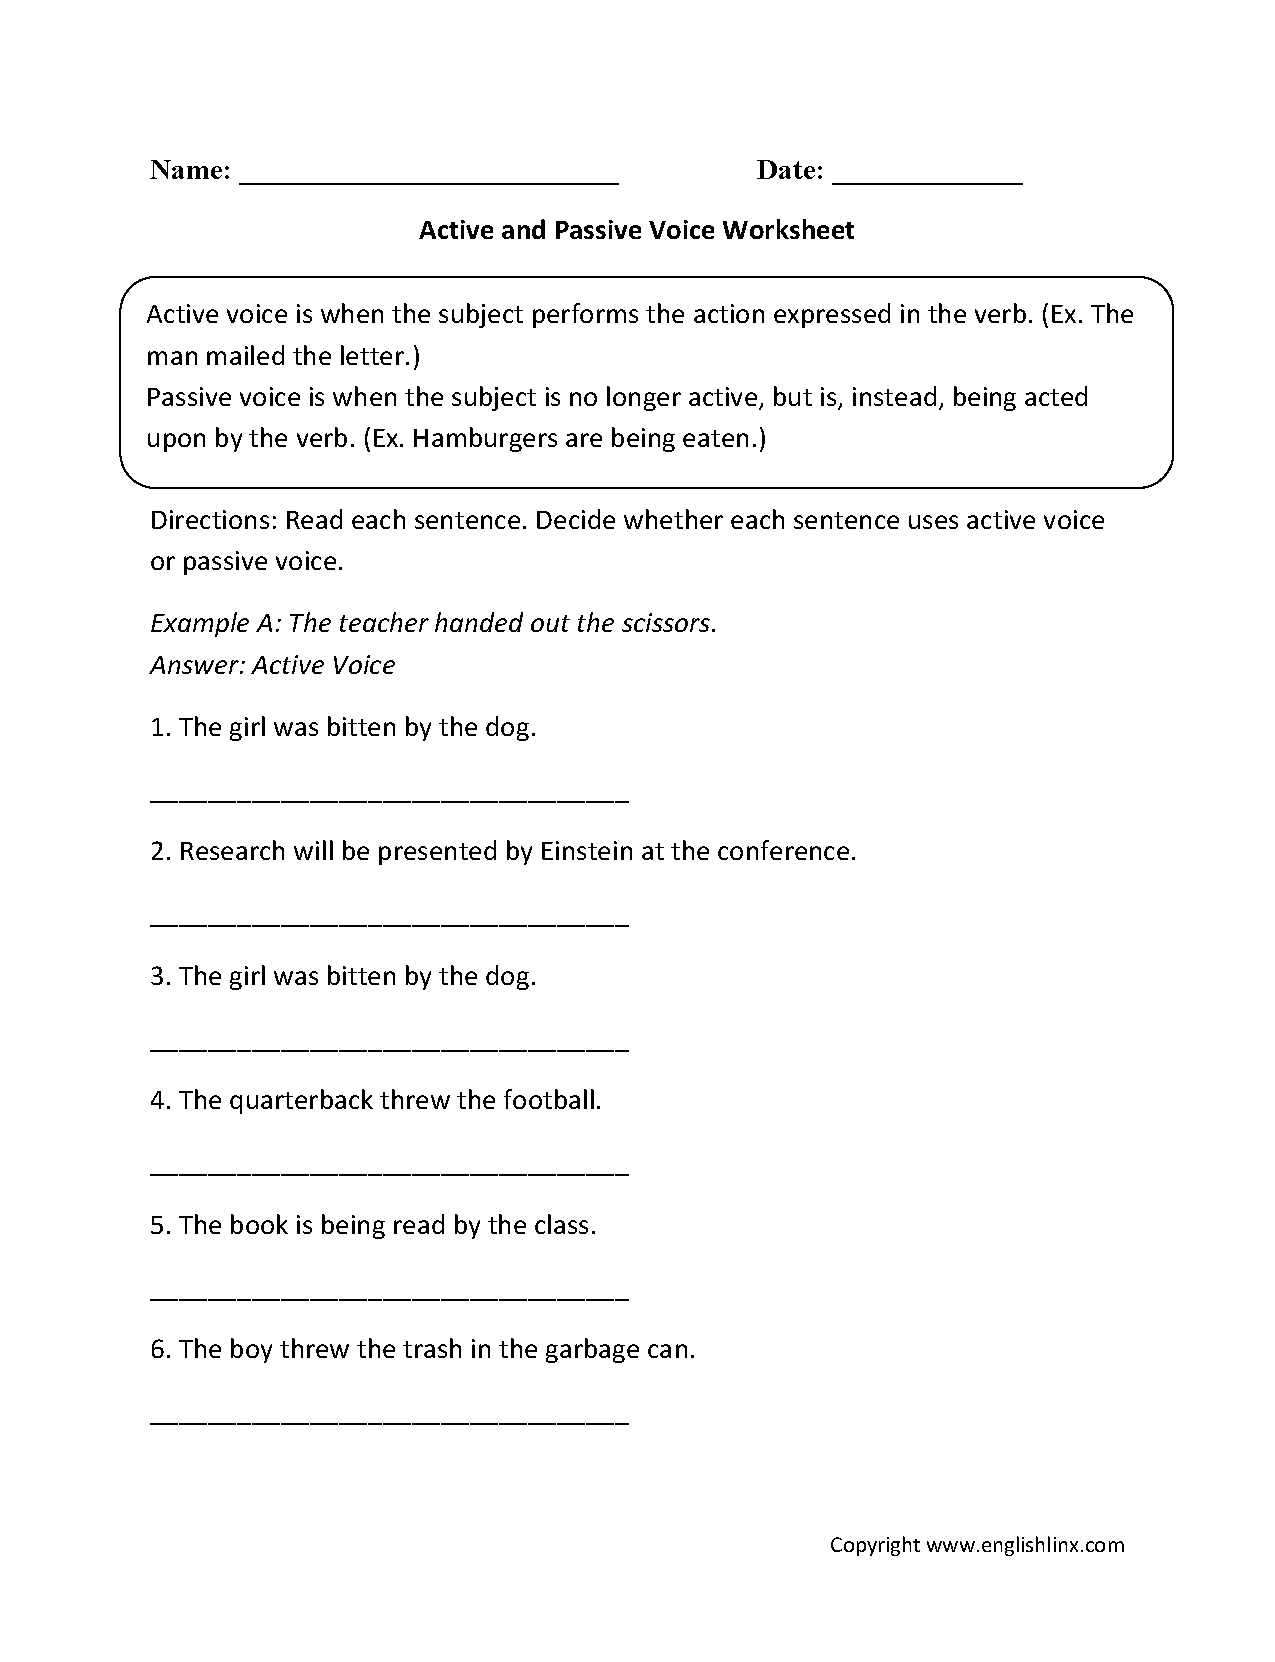 Active Passive Voice on 6 Simple Present Exercises